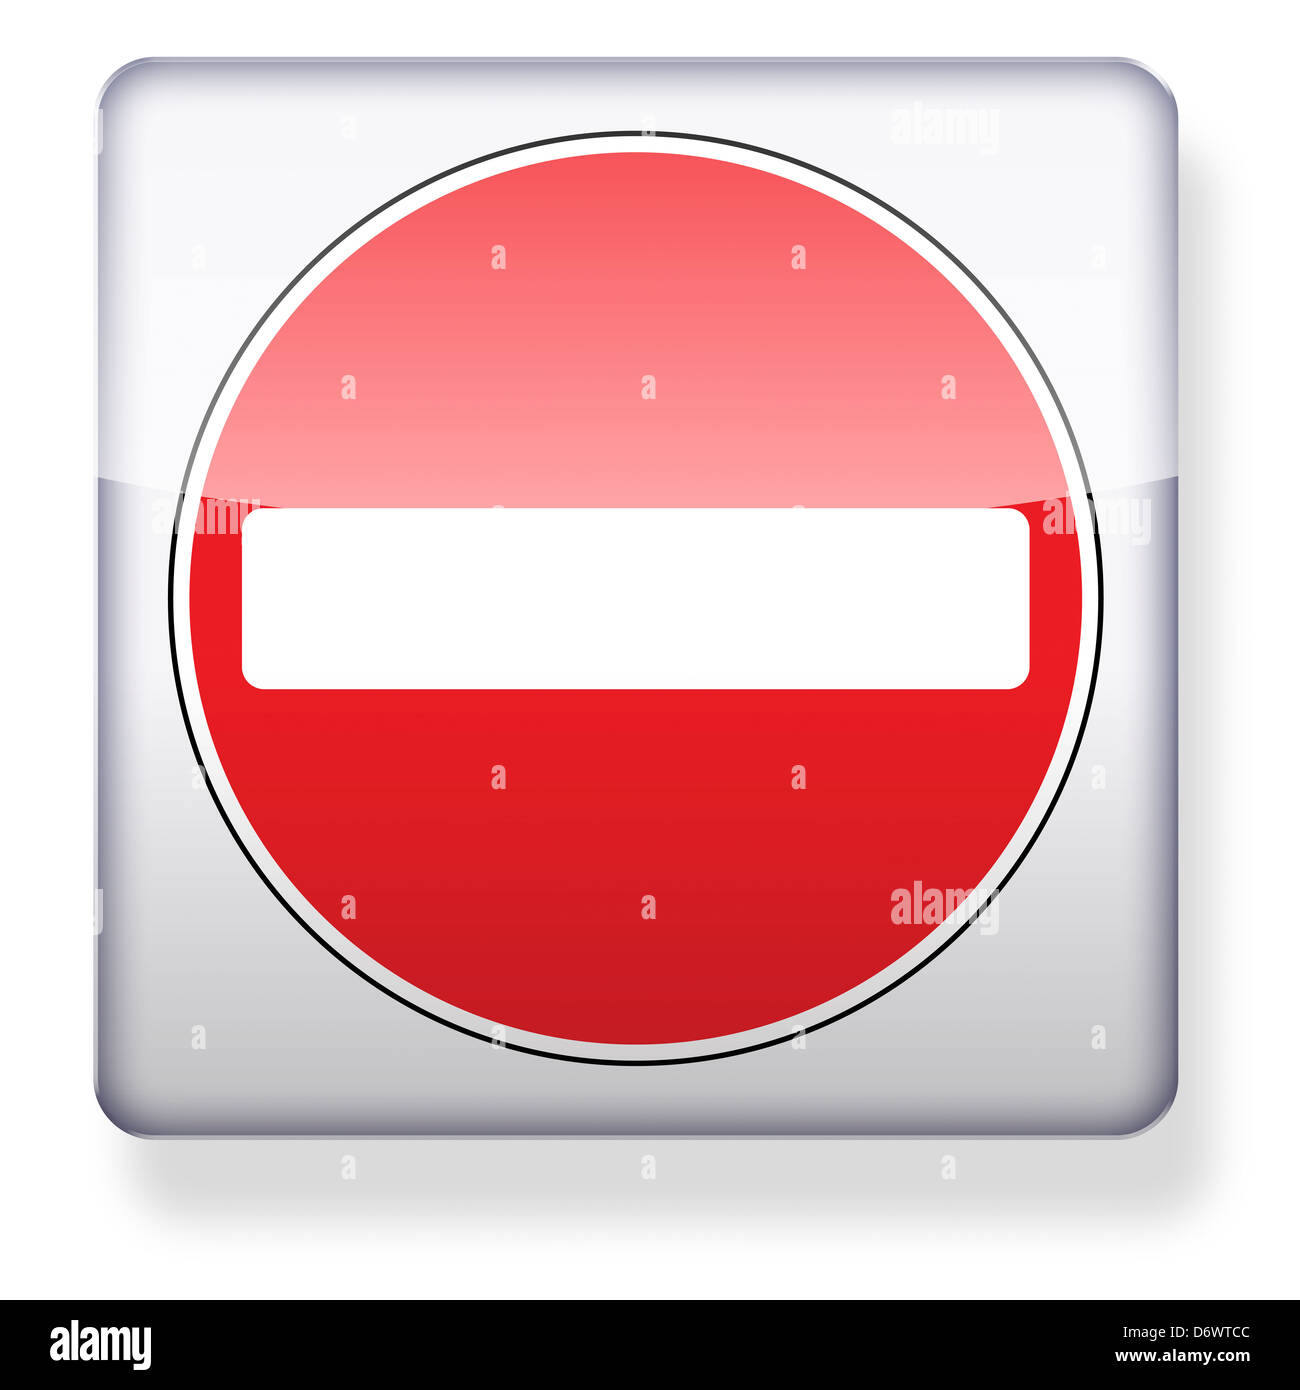 No entry road sign as an app icon. Clipping path included. - Stock Image